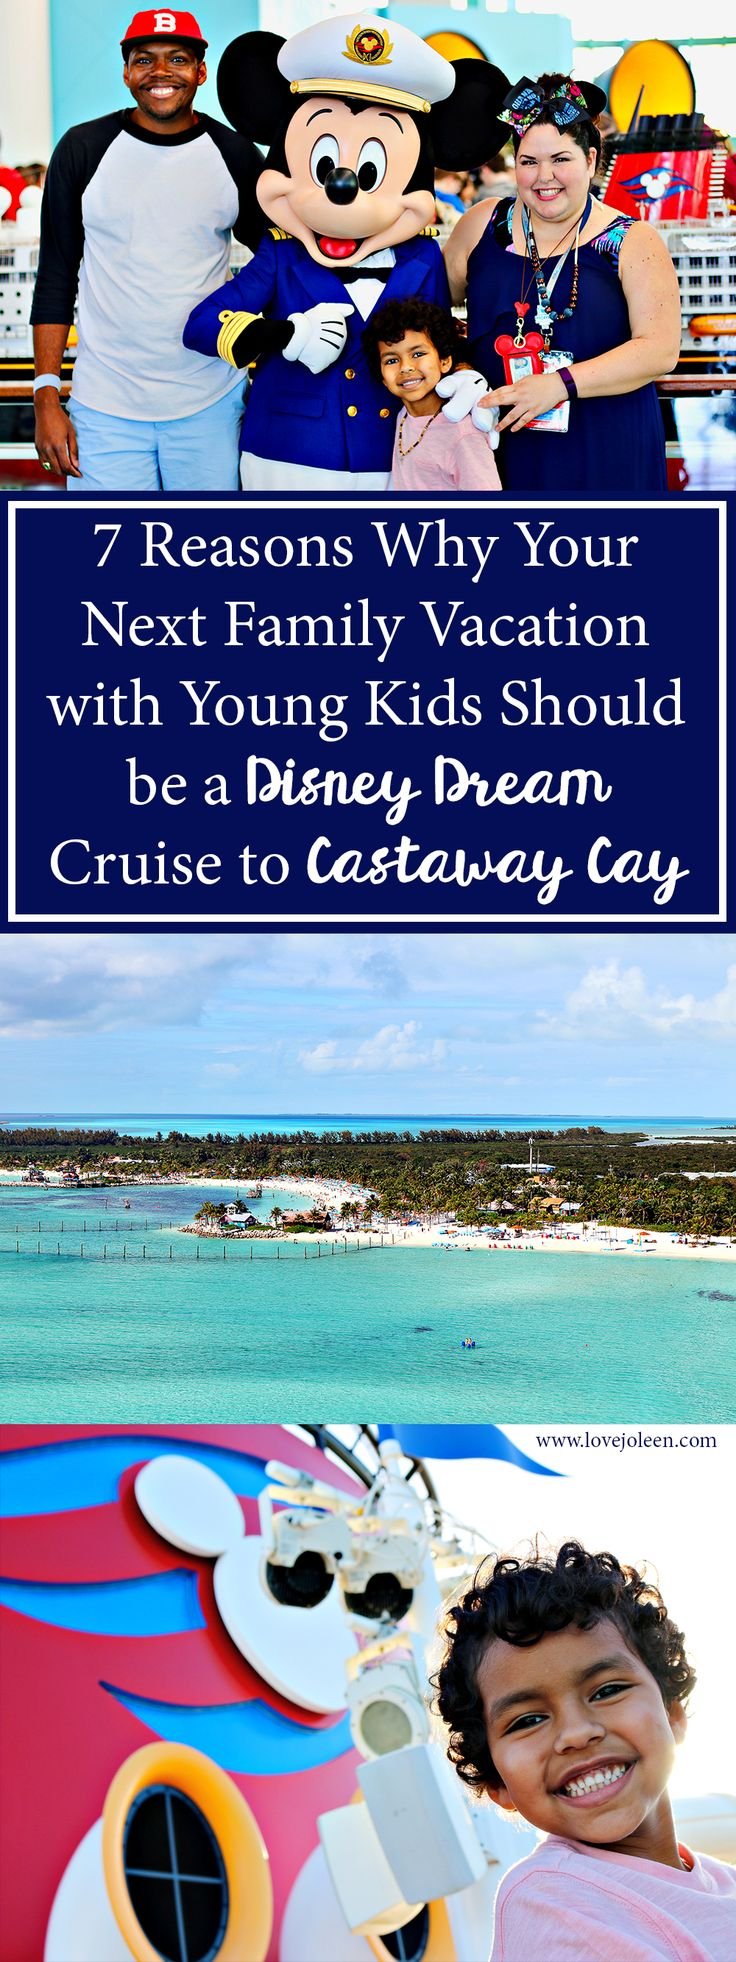 Love, Joleen: 7 Reasons Why Your Next Family Vacation with Young Kids Should be a Disney Dream Cruise to Castaway Cay   #DisneySMMC #DisneyMoms #Disney #DisneyCruiseLine #DisneyDream #Cruise #Travel #TravelBlogger #CastawayCay #Family #FamilyTravel #FamilyVacation